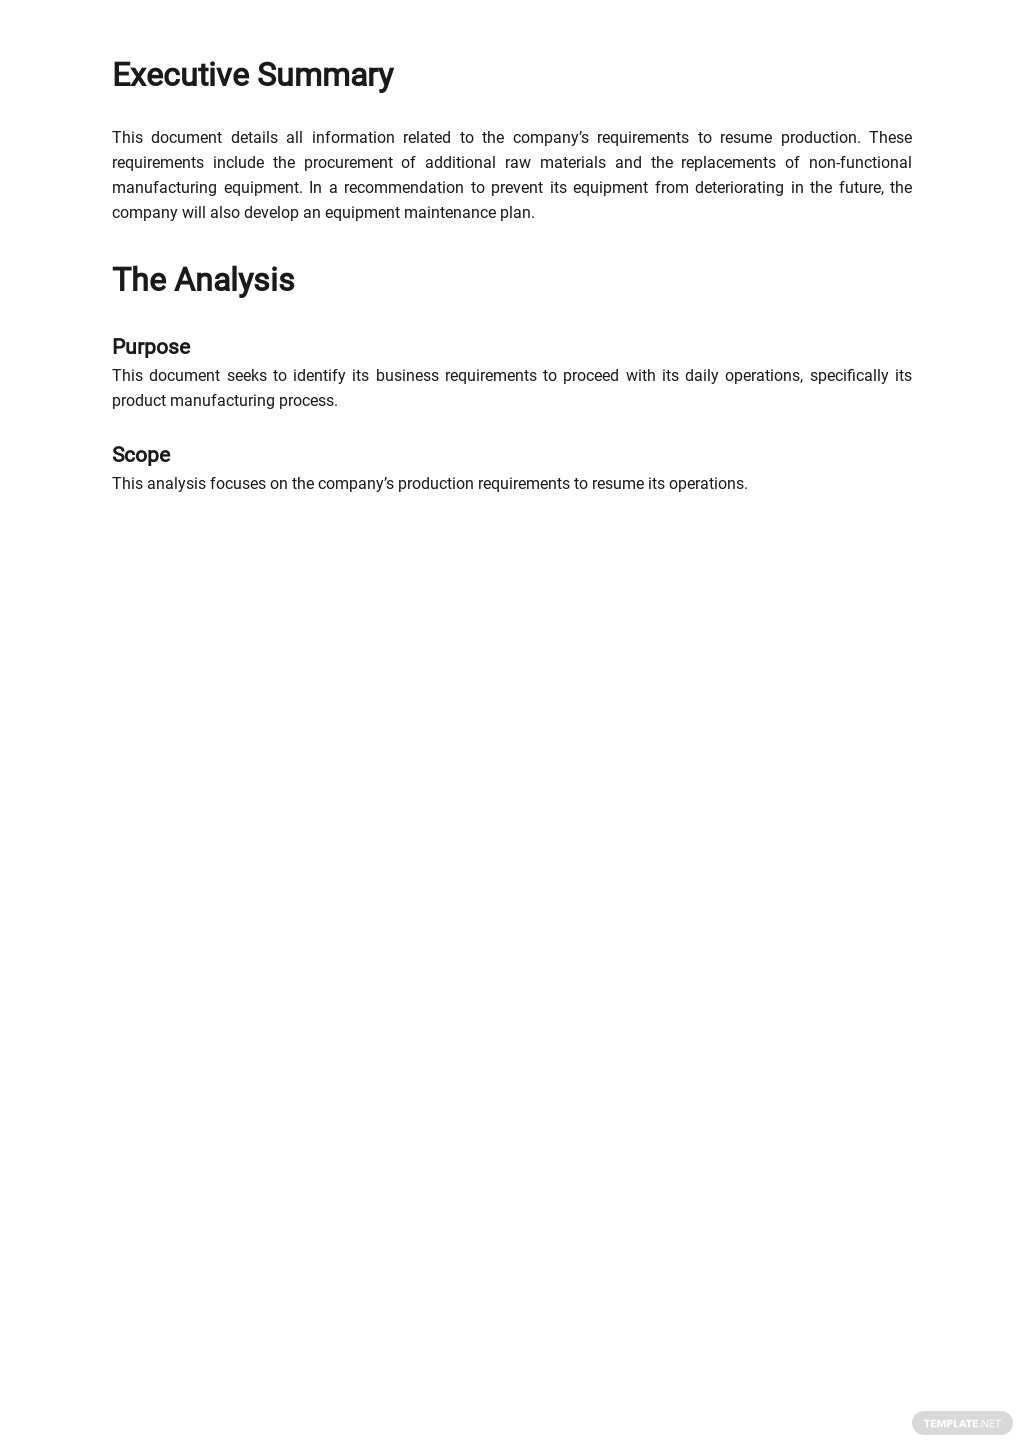 Business Requirements Analysis Template 1.jpe